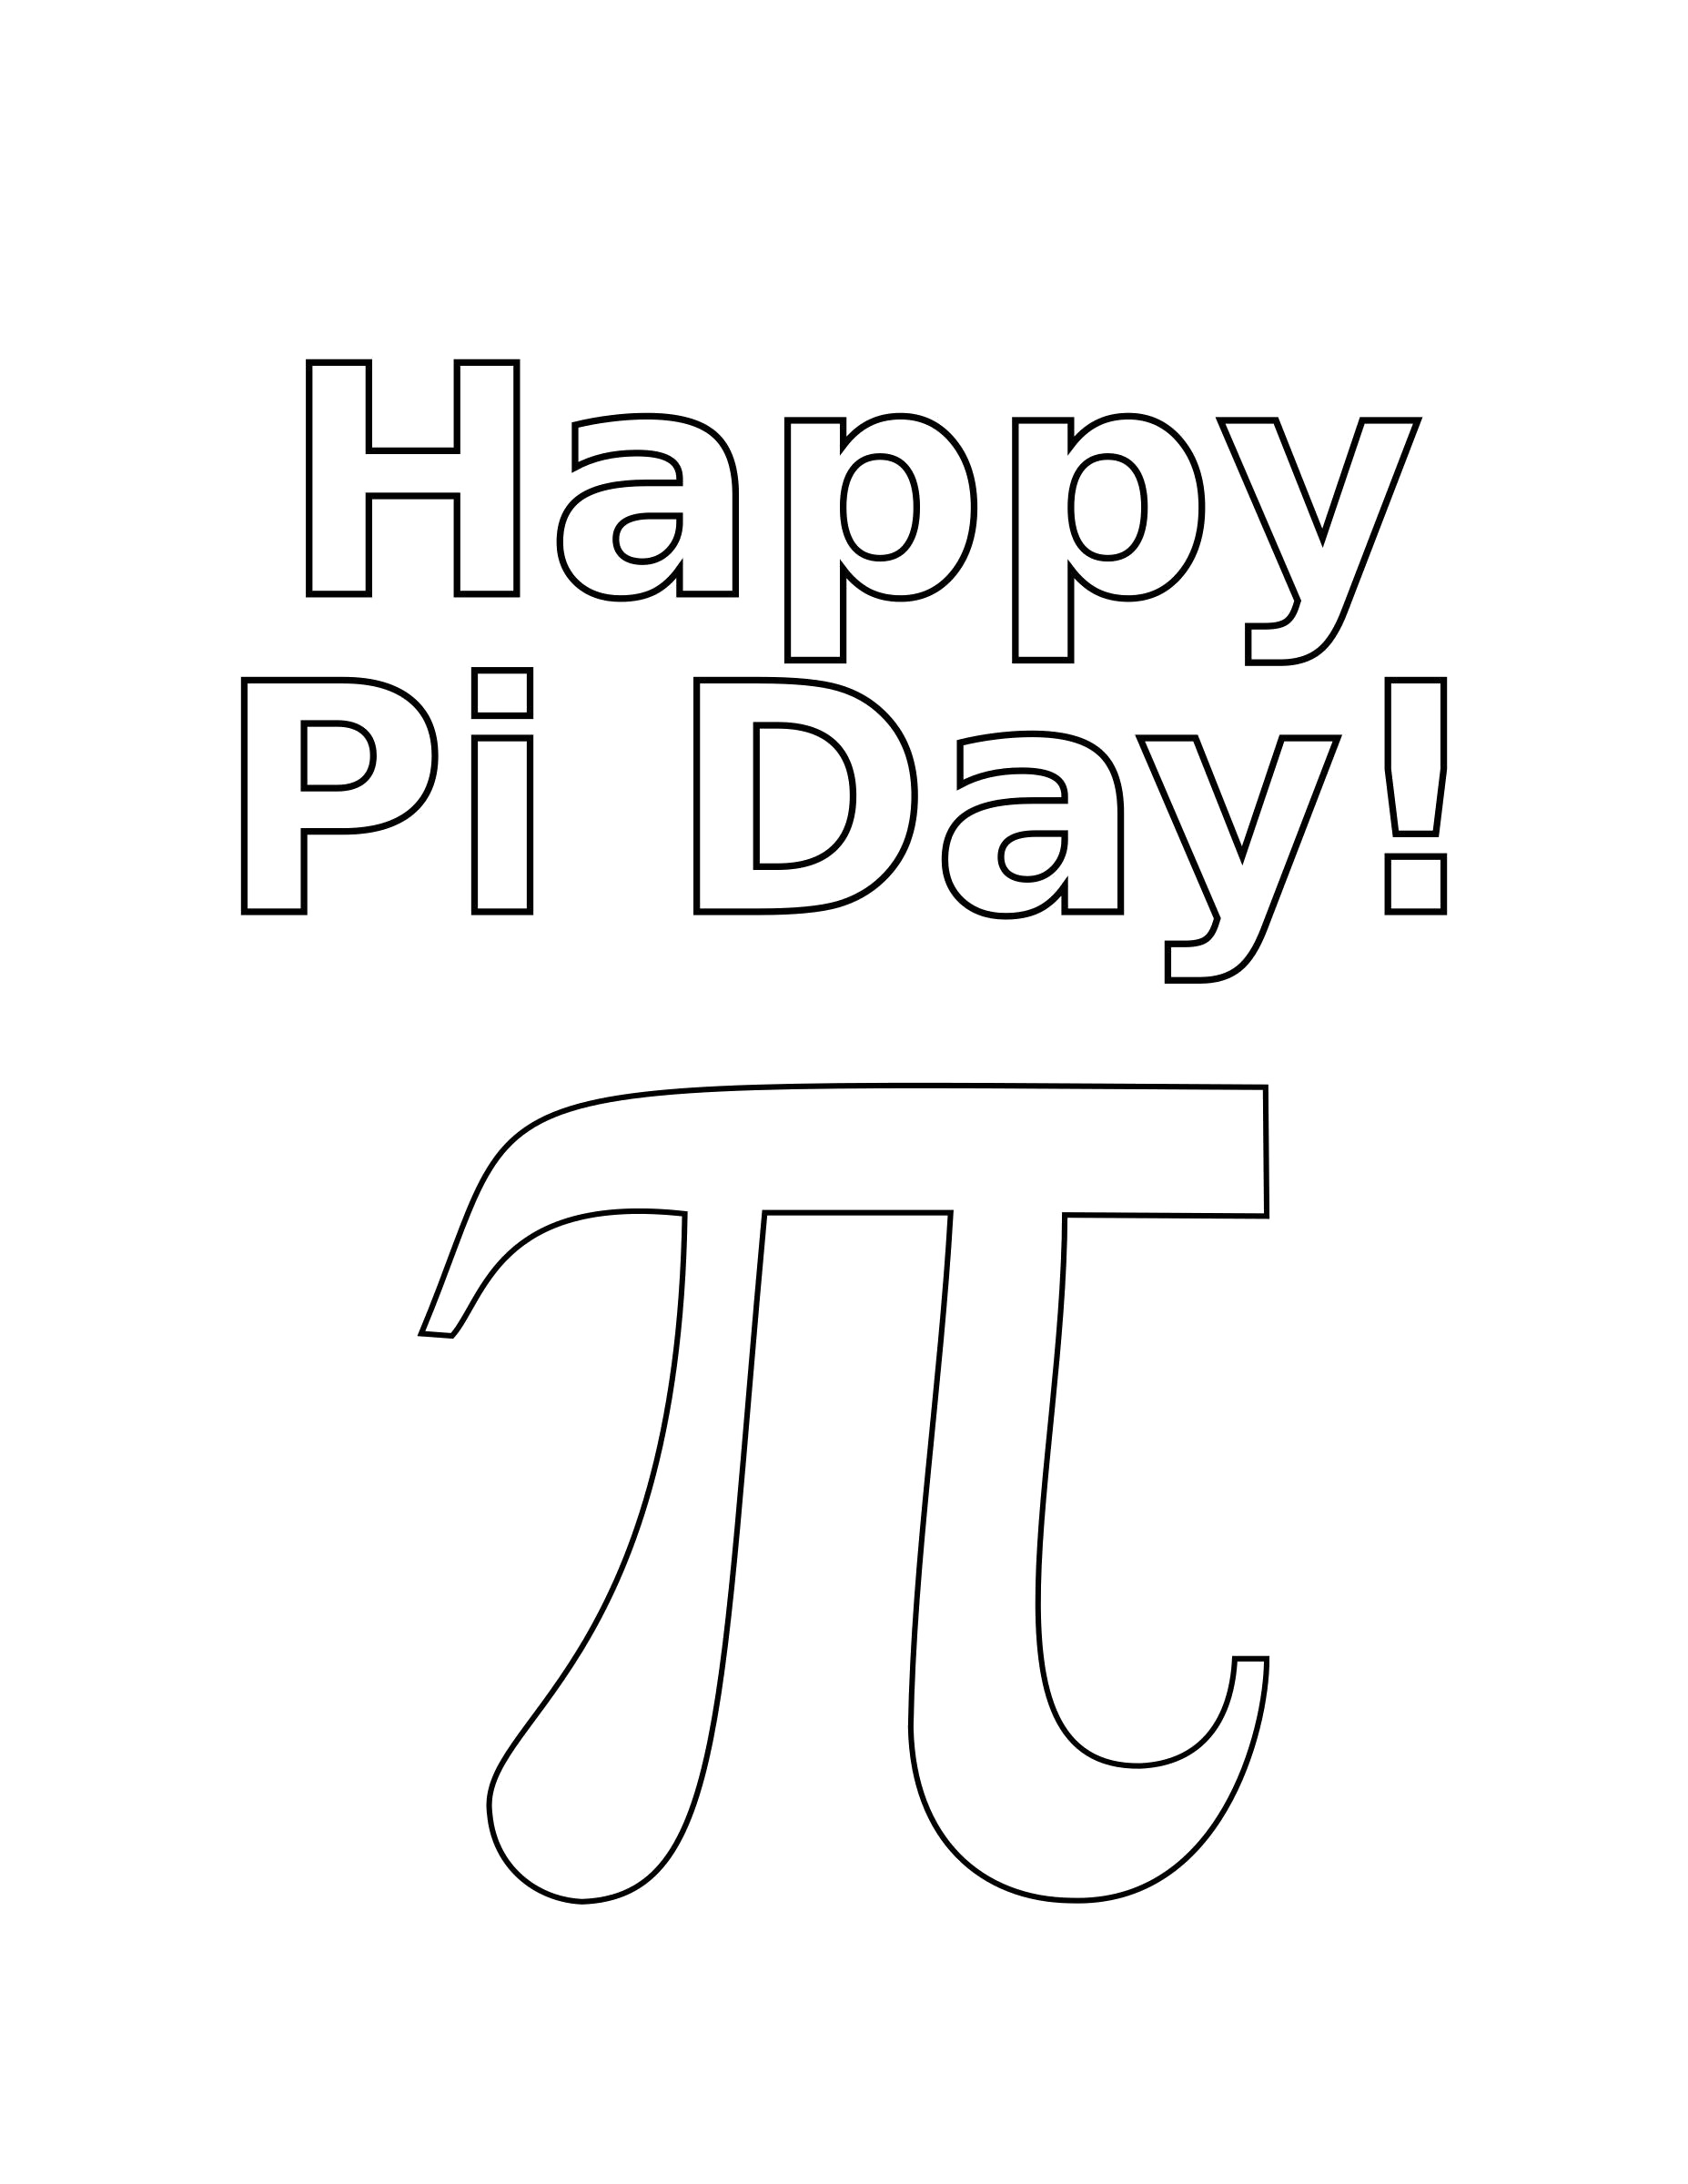 Apple pi day clipart graphic freeuse Pi Day Transparent Image - peoplepng.com graphic freeuse